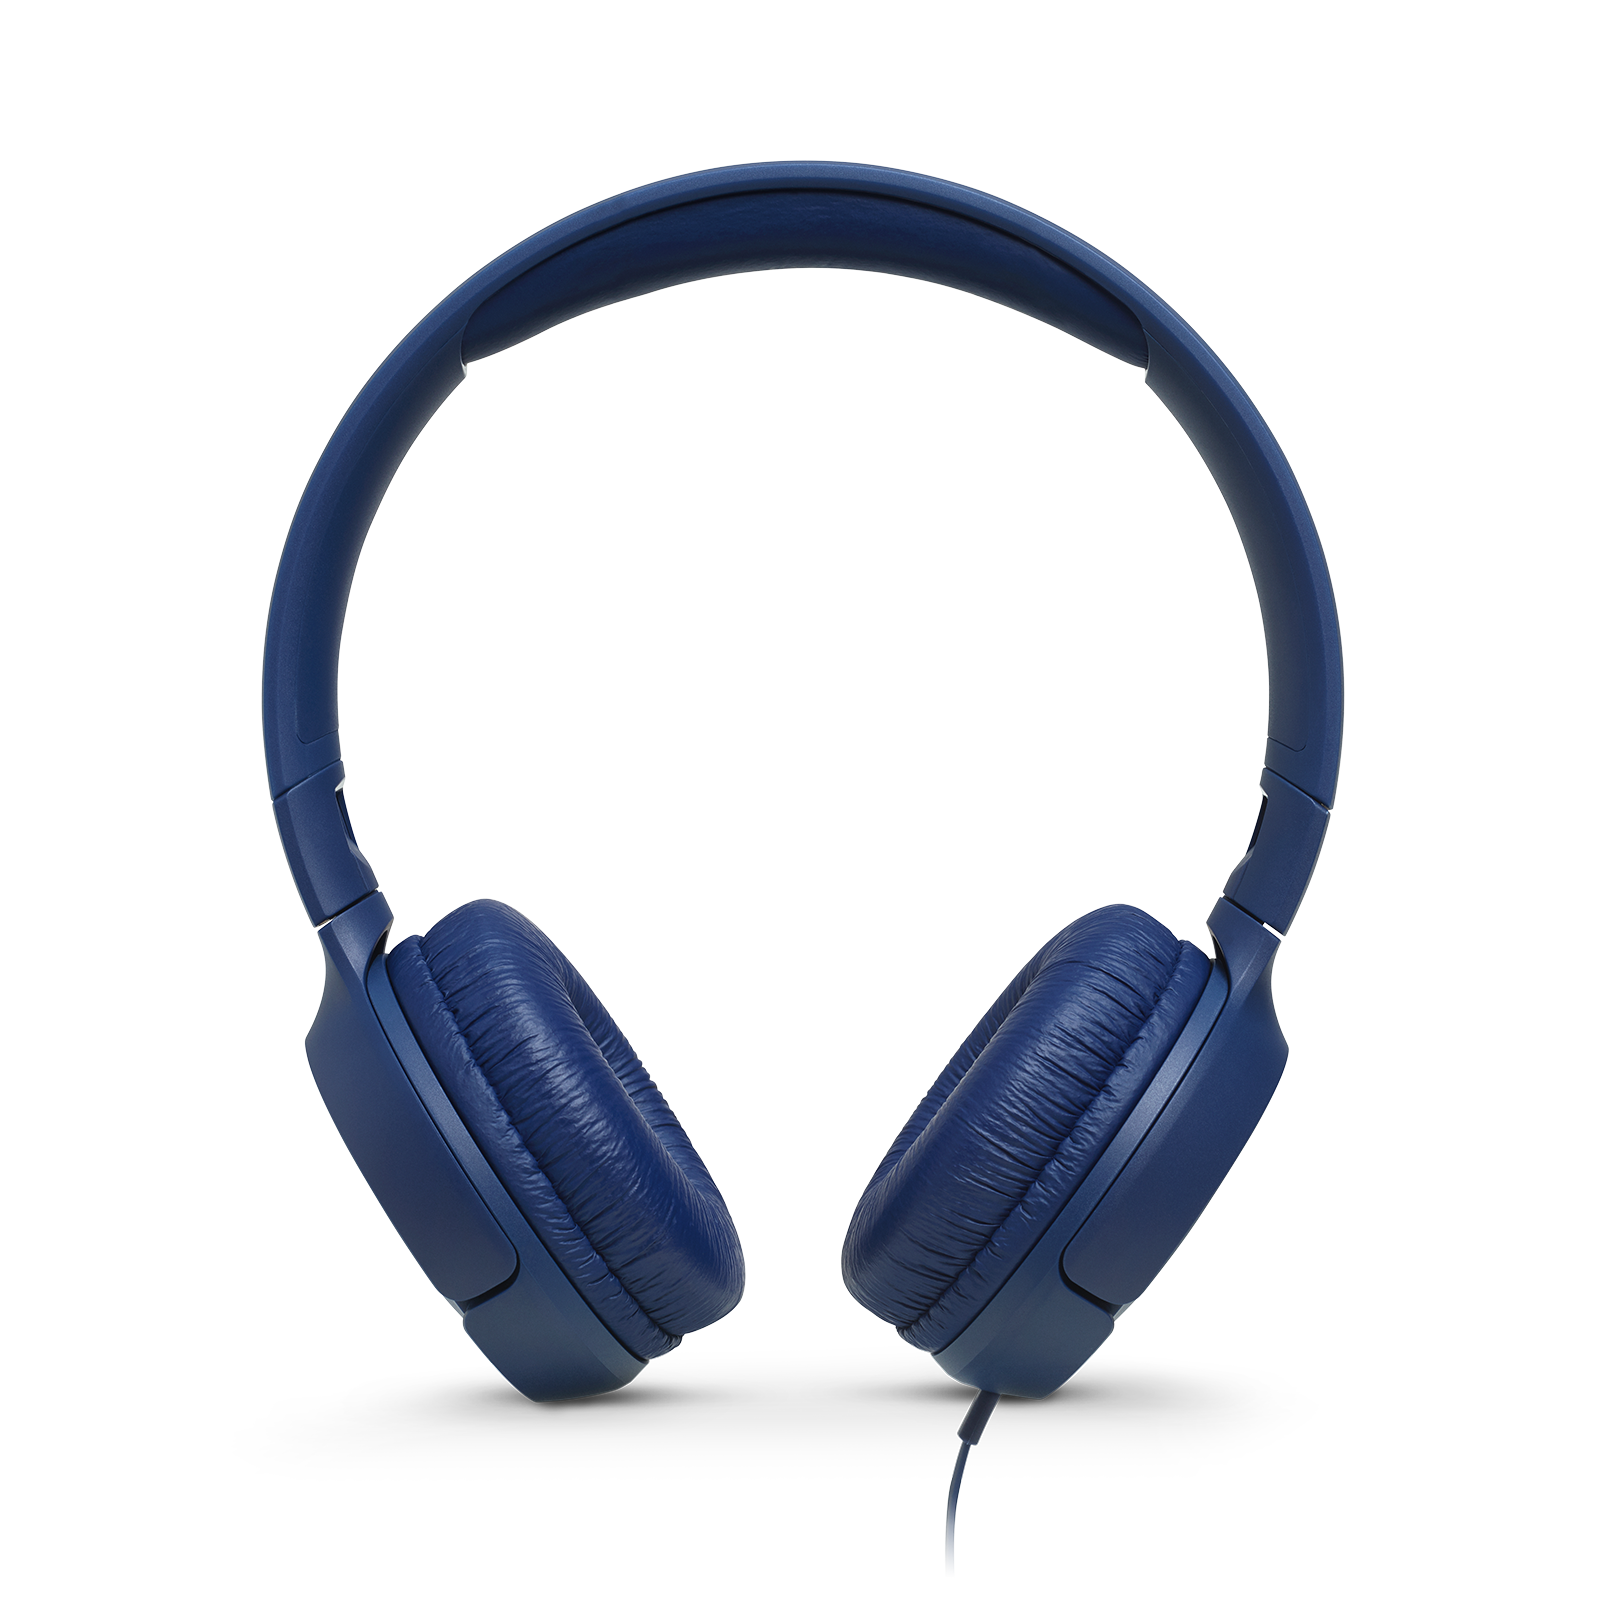 JBL TUNE 500 - Blue - Wired on-ear headphones - Front